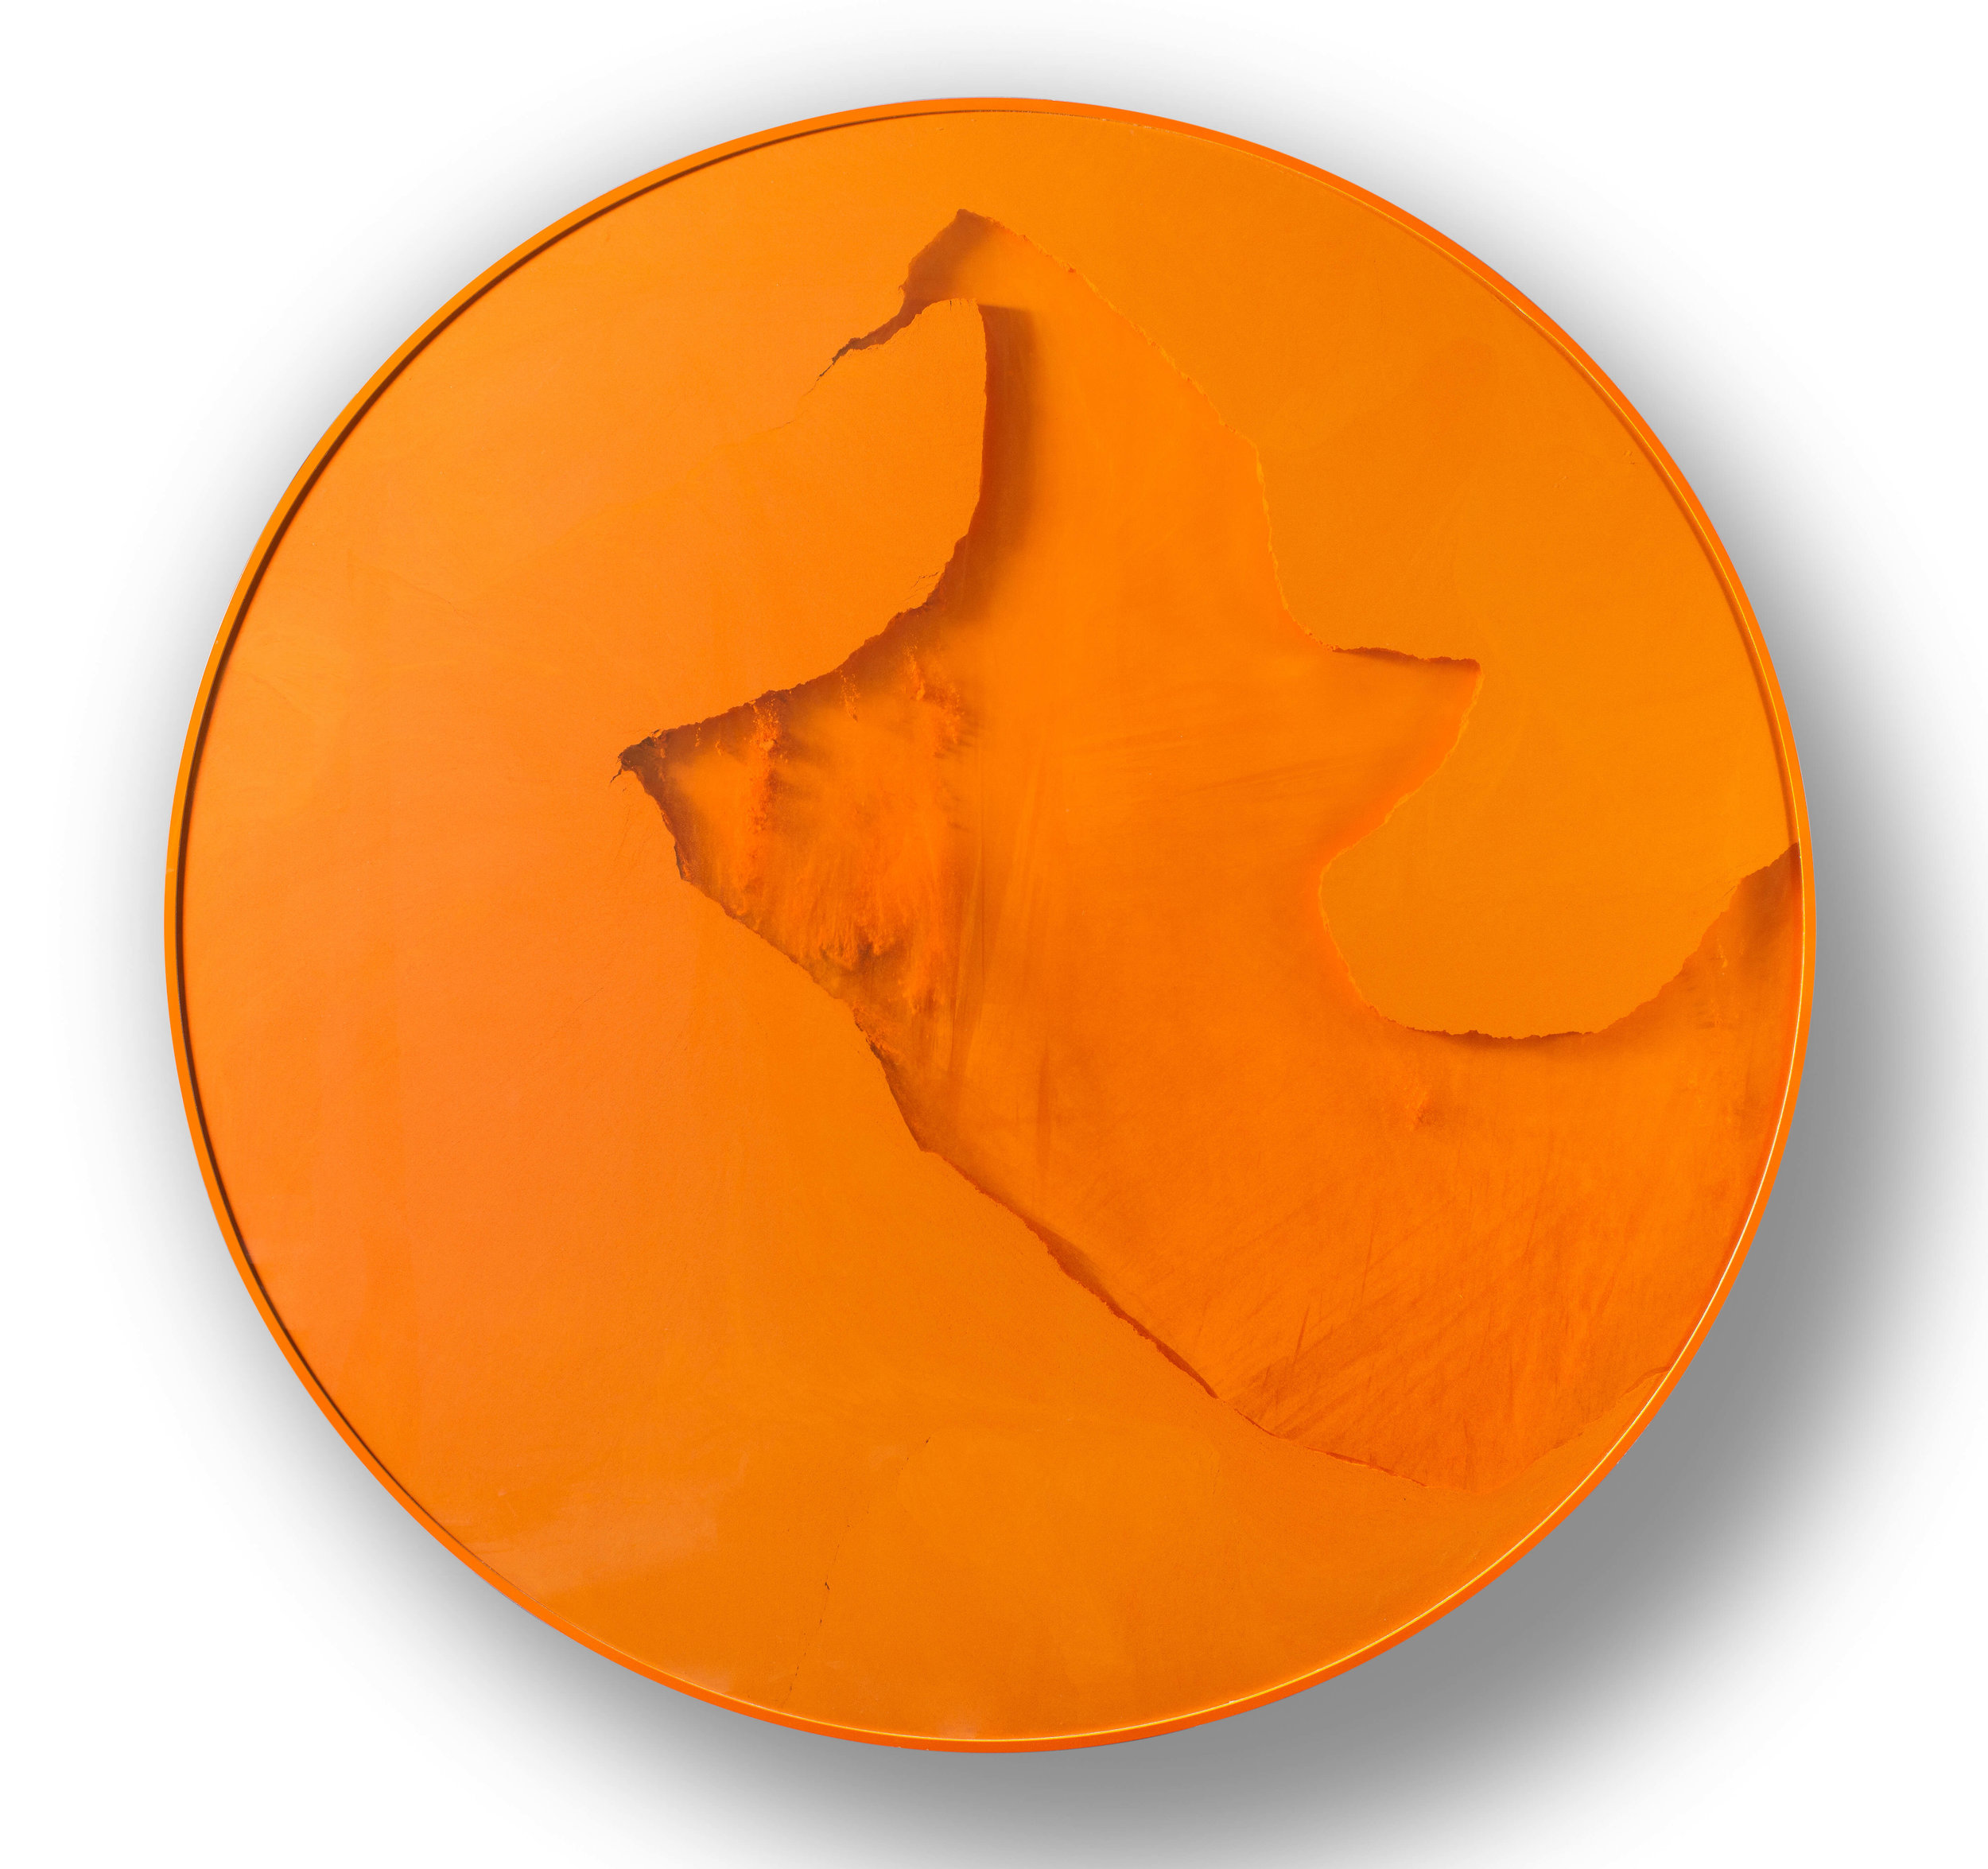 Manuel Merida,   Cercle Orange,  2014, Painted wood, glass, powder pigment, motor, 47 1/4 inches diameter